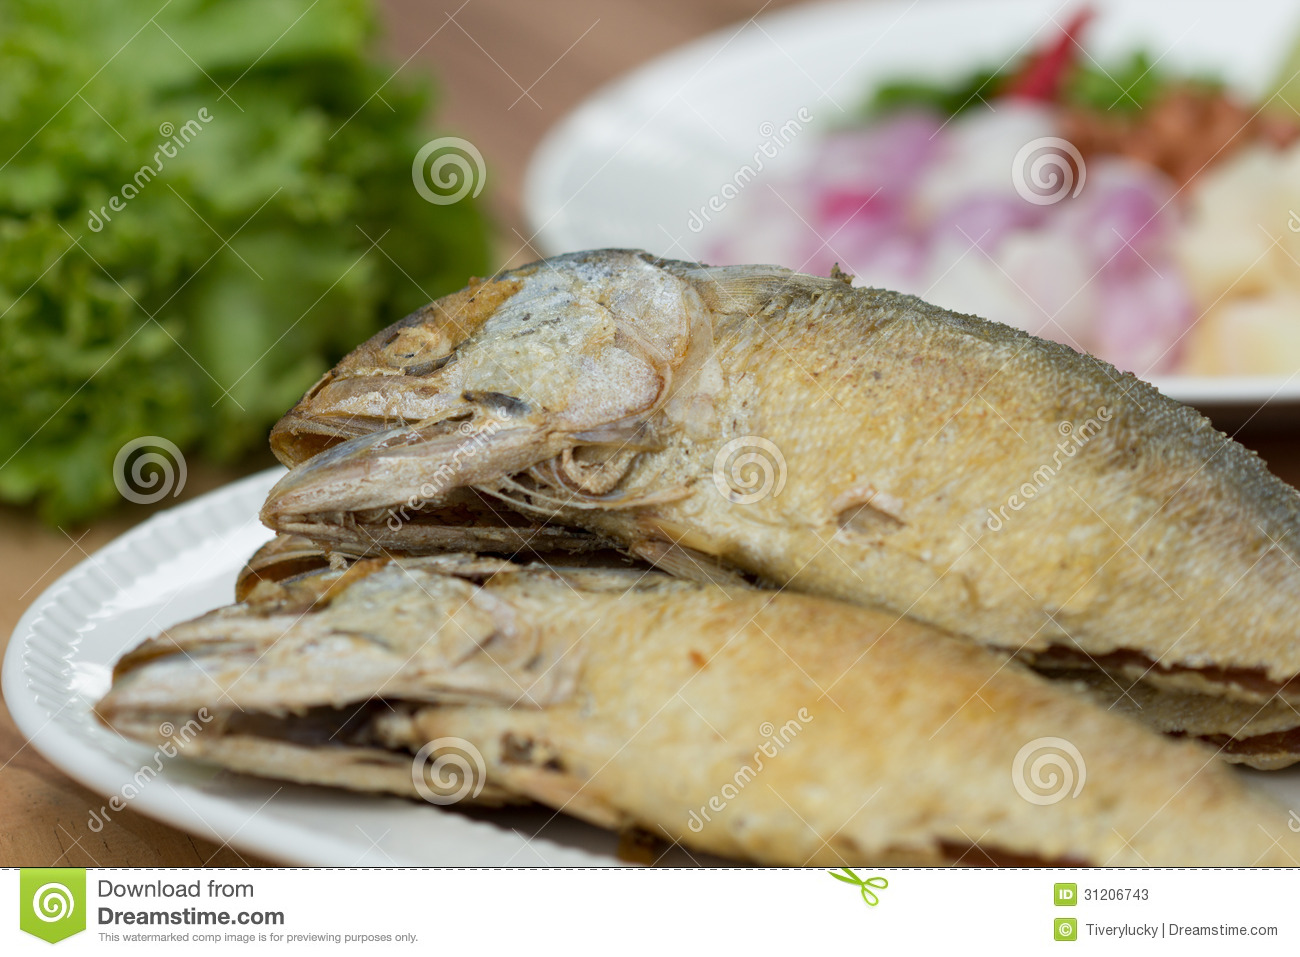 Fried fish stock photos image 31206743 for Side dishes for fried fish